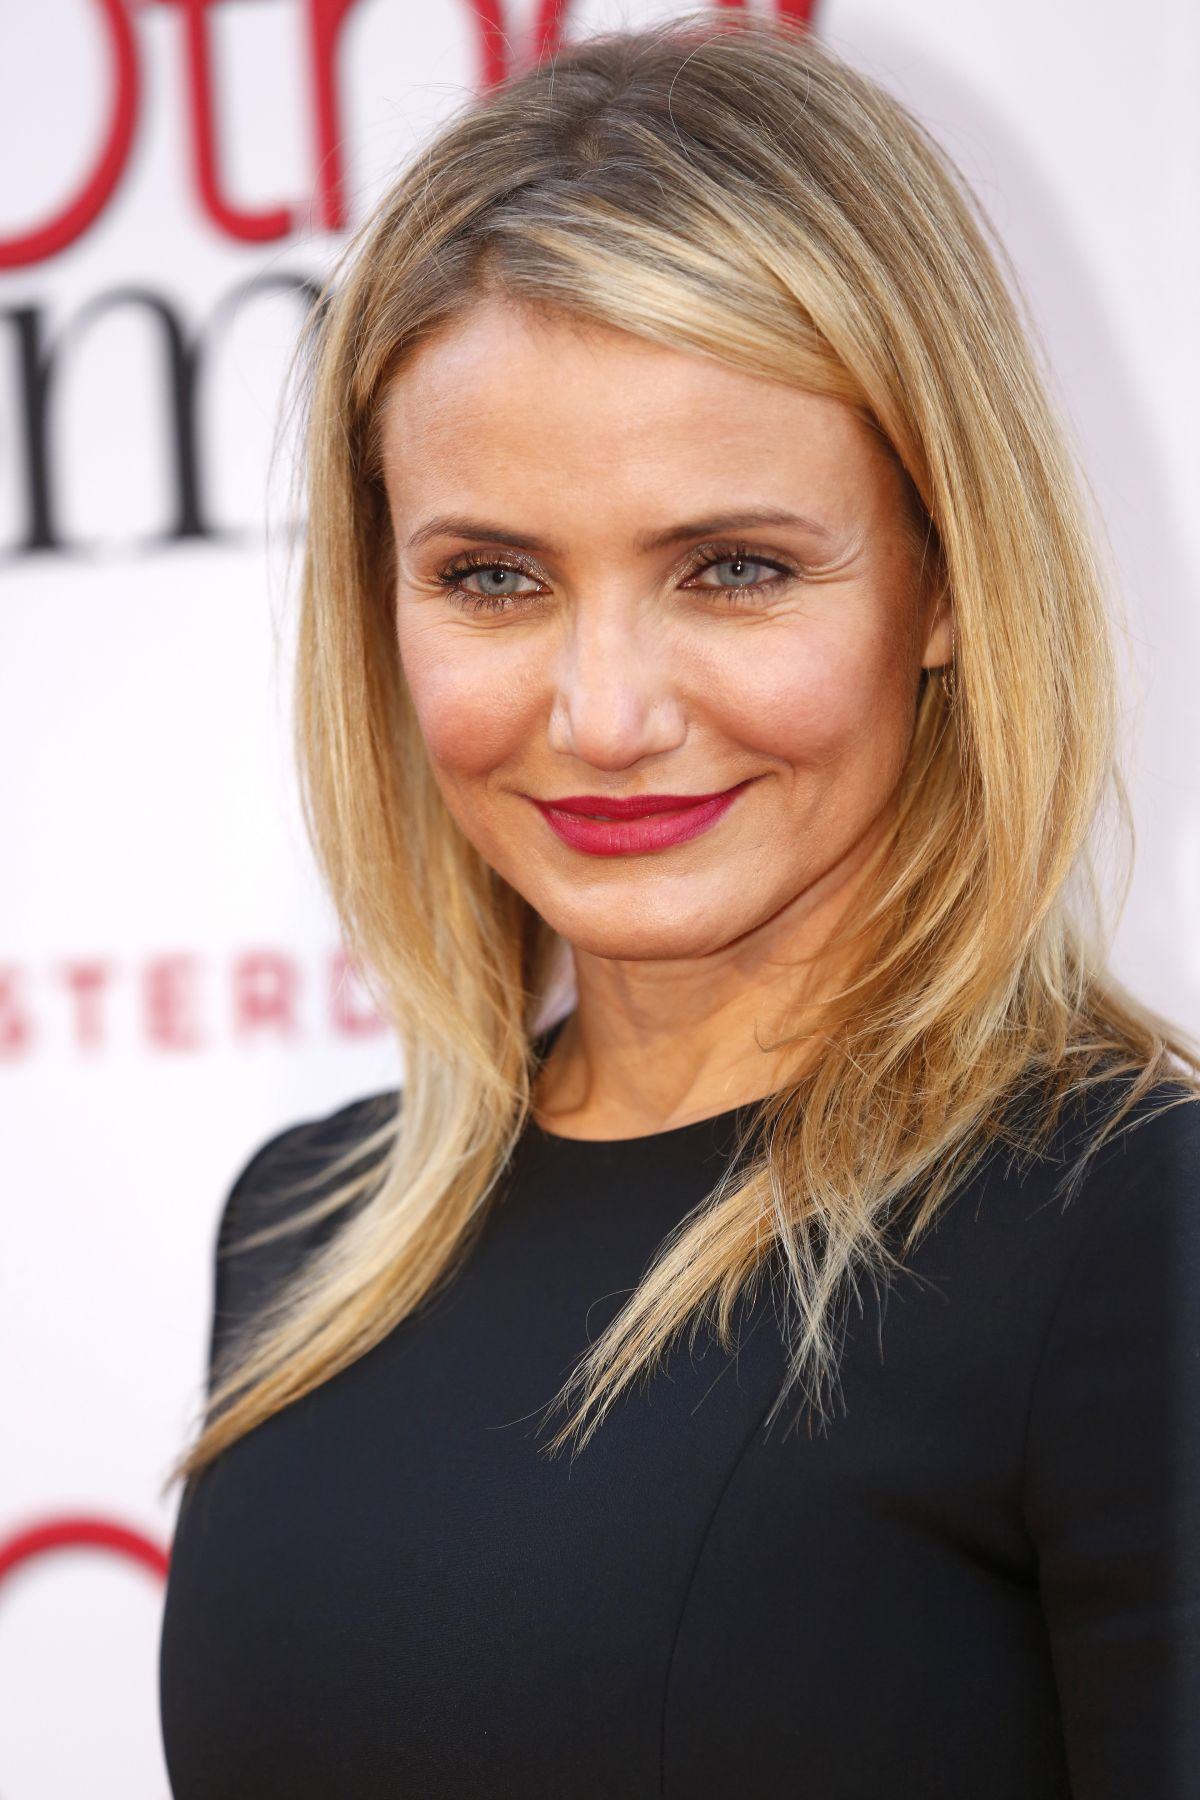 cameron diaz at the other woman premiere in amsterdam - hawtcelebs